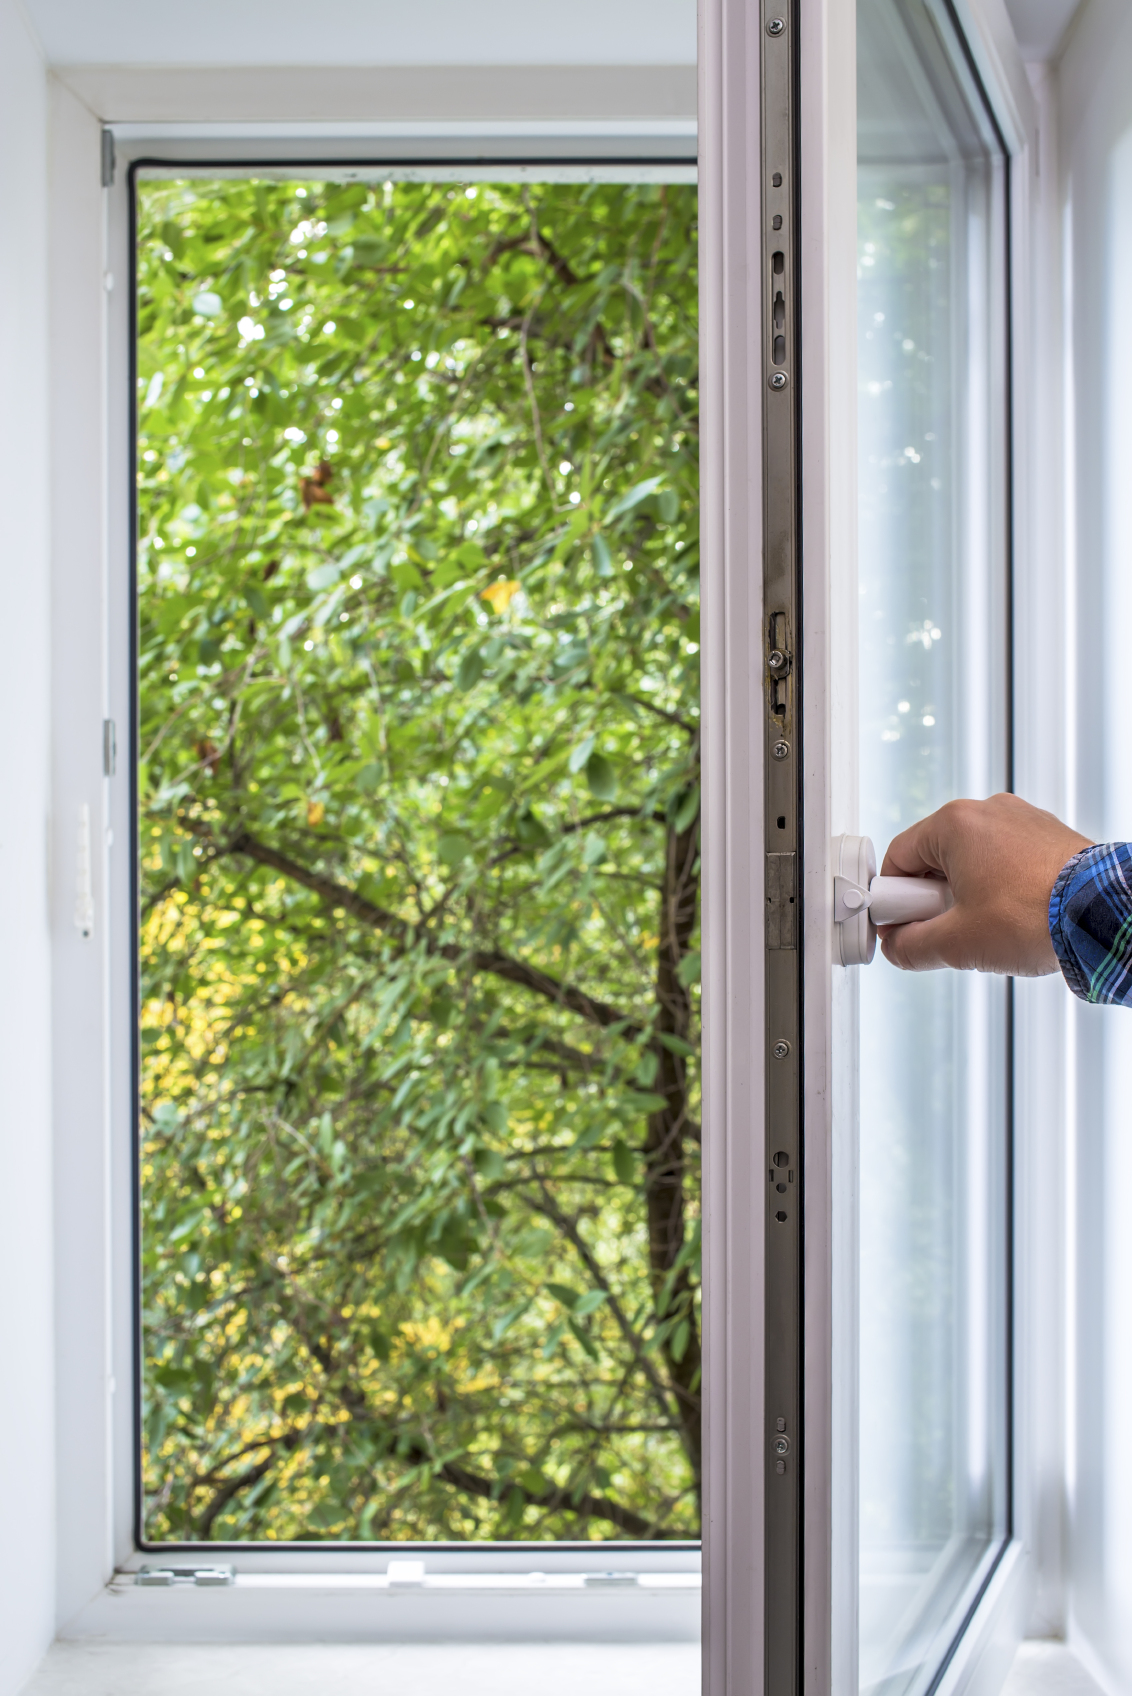 Replacement Turn & Tilt Windows from Semko, Inc. - Chicago, IL